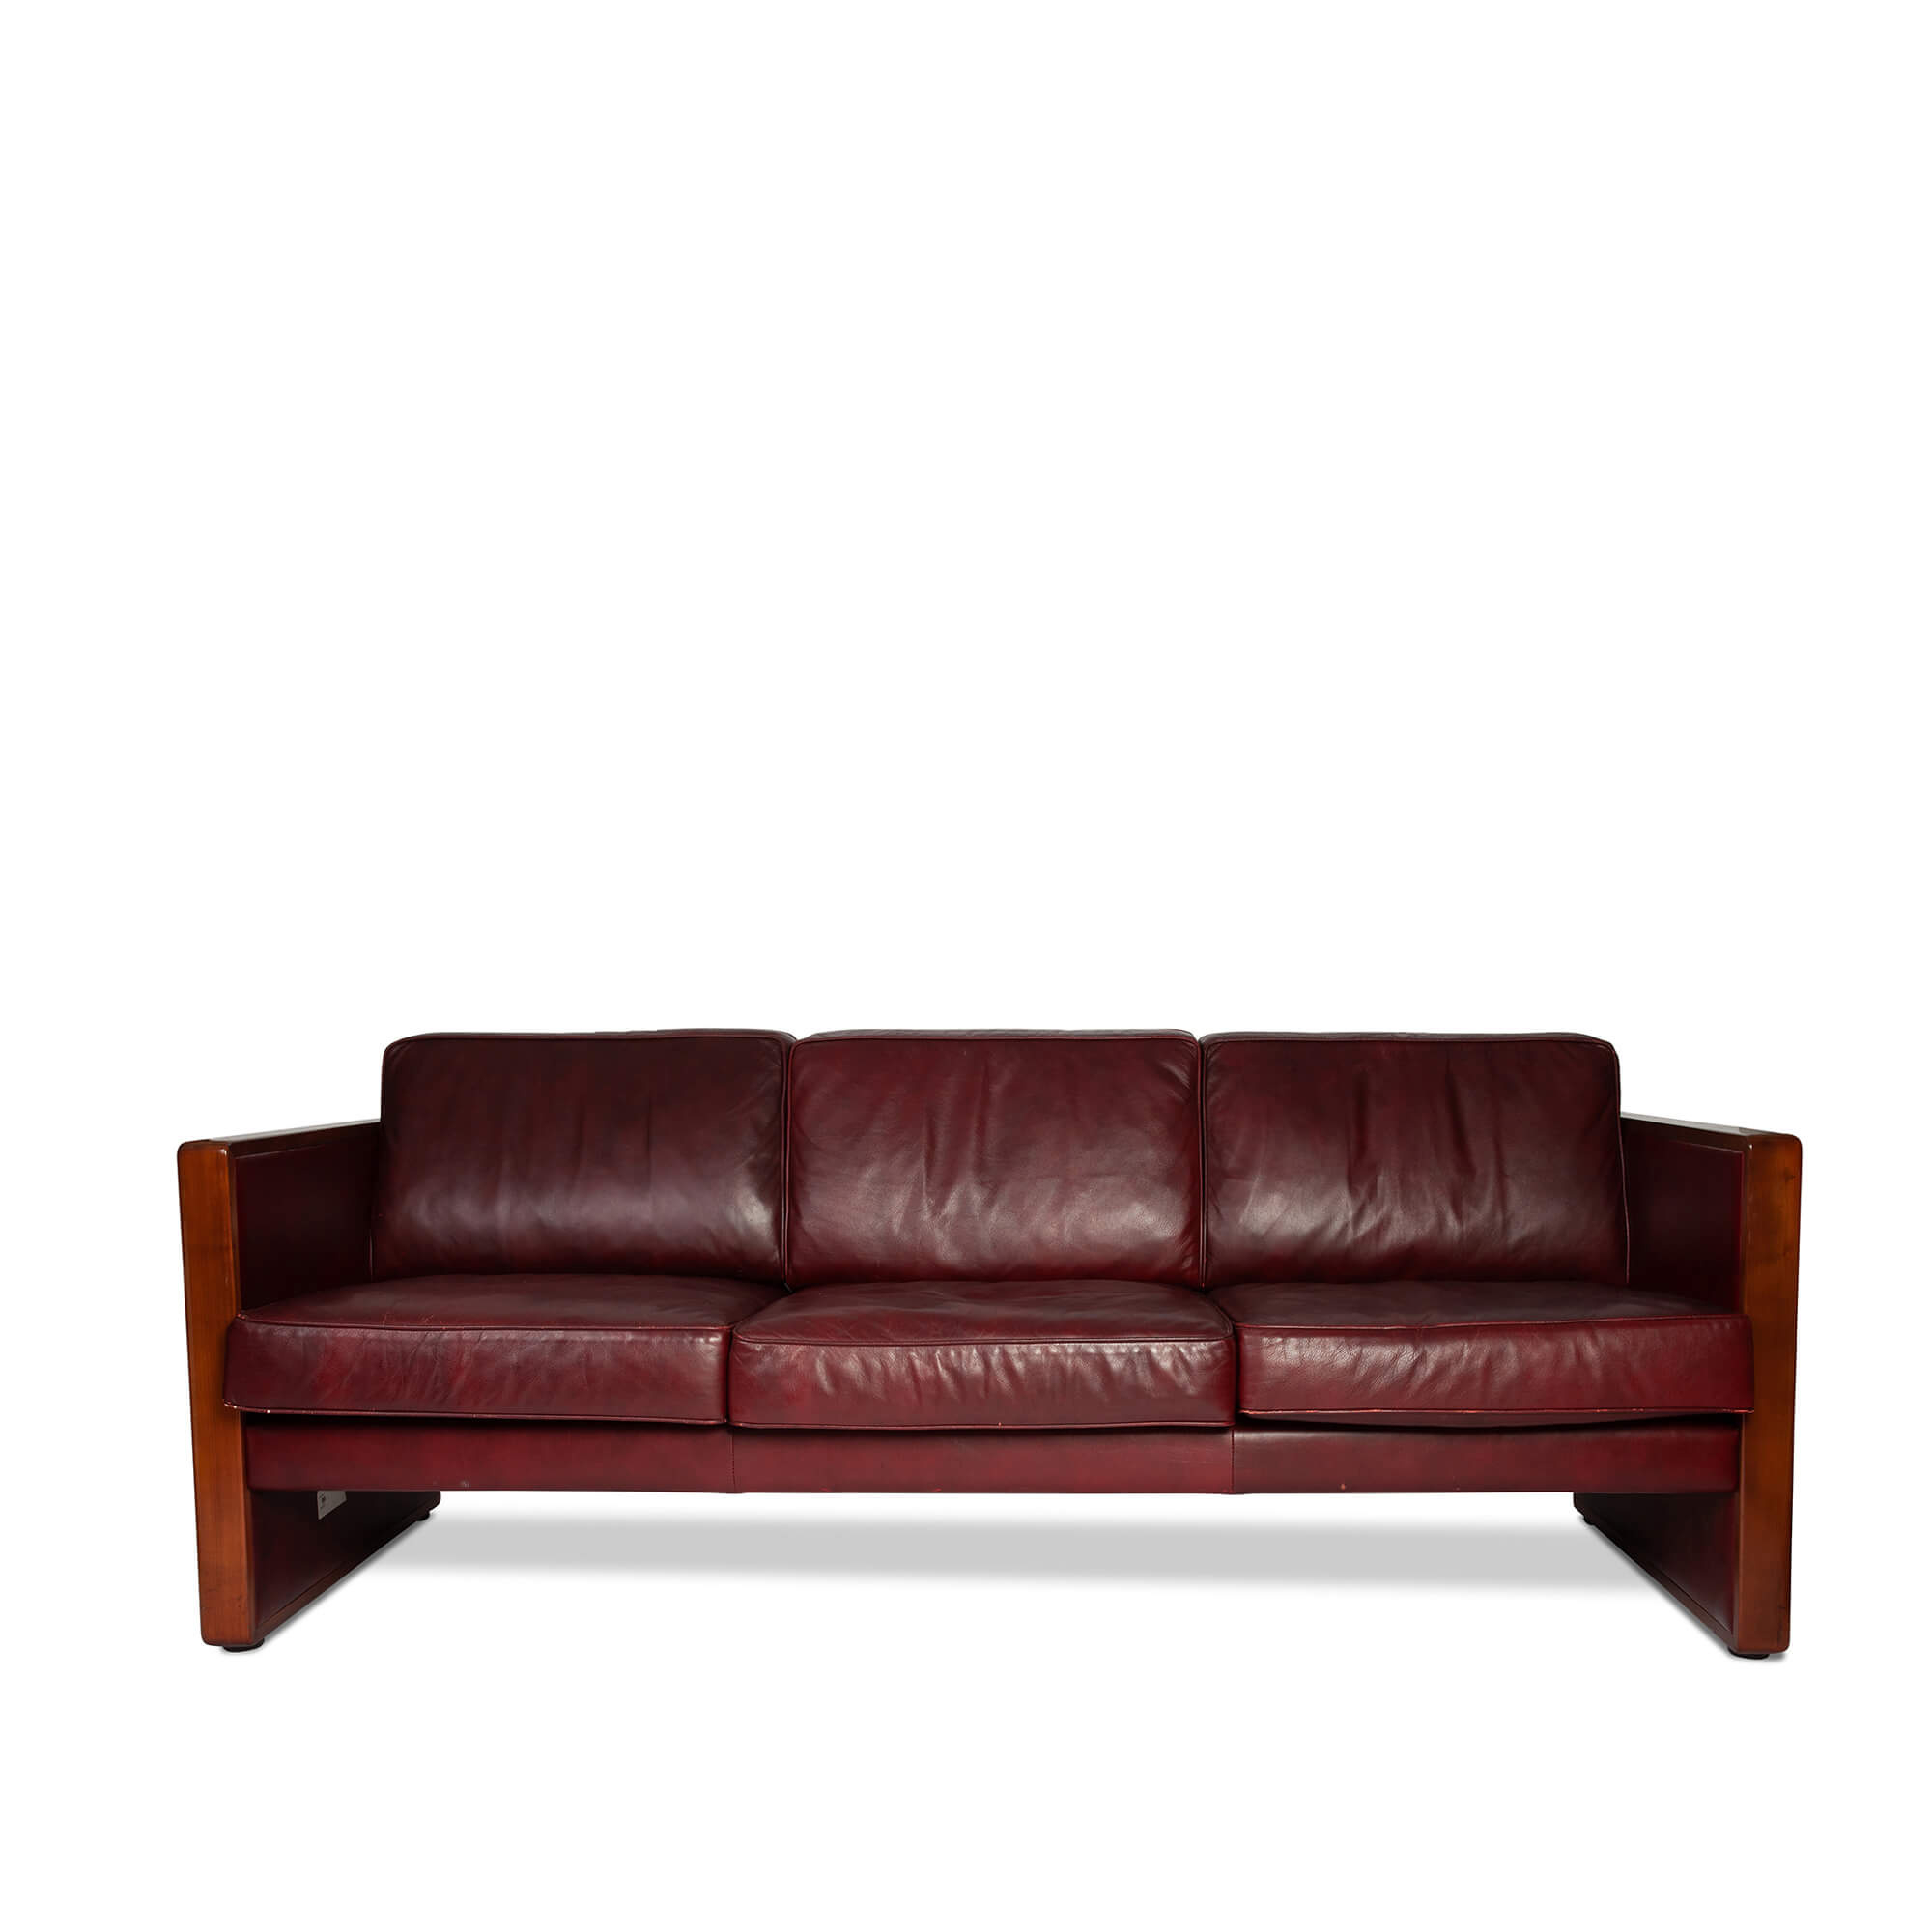 Vintage Walter Knoll Leather Sofa For Walter Leather Sofa Chairs (Image 10 of 25)